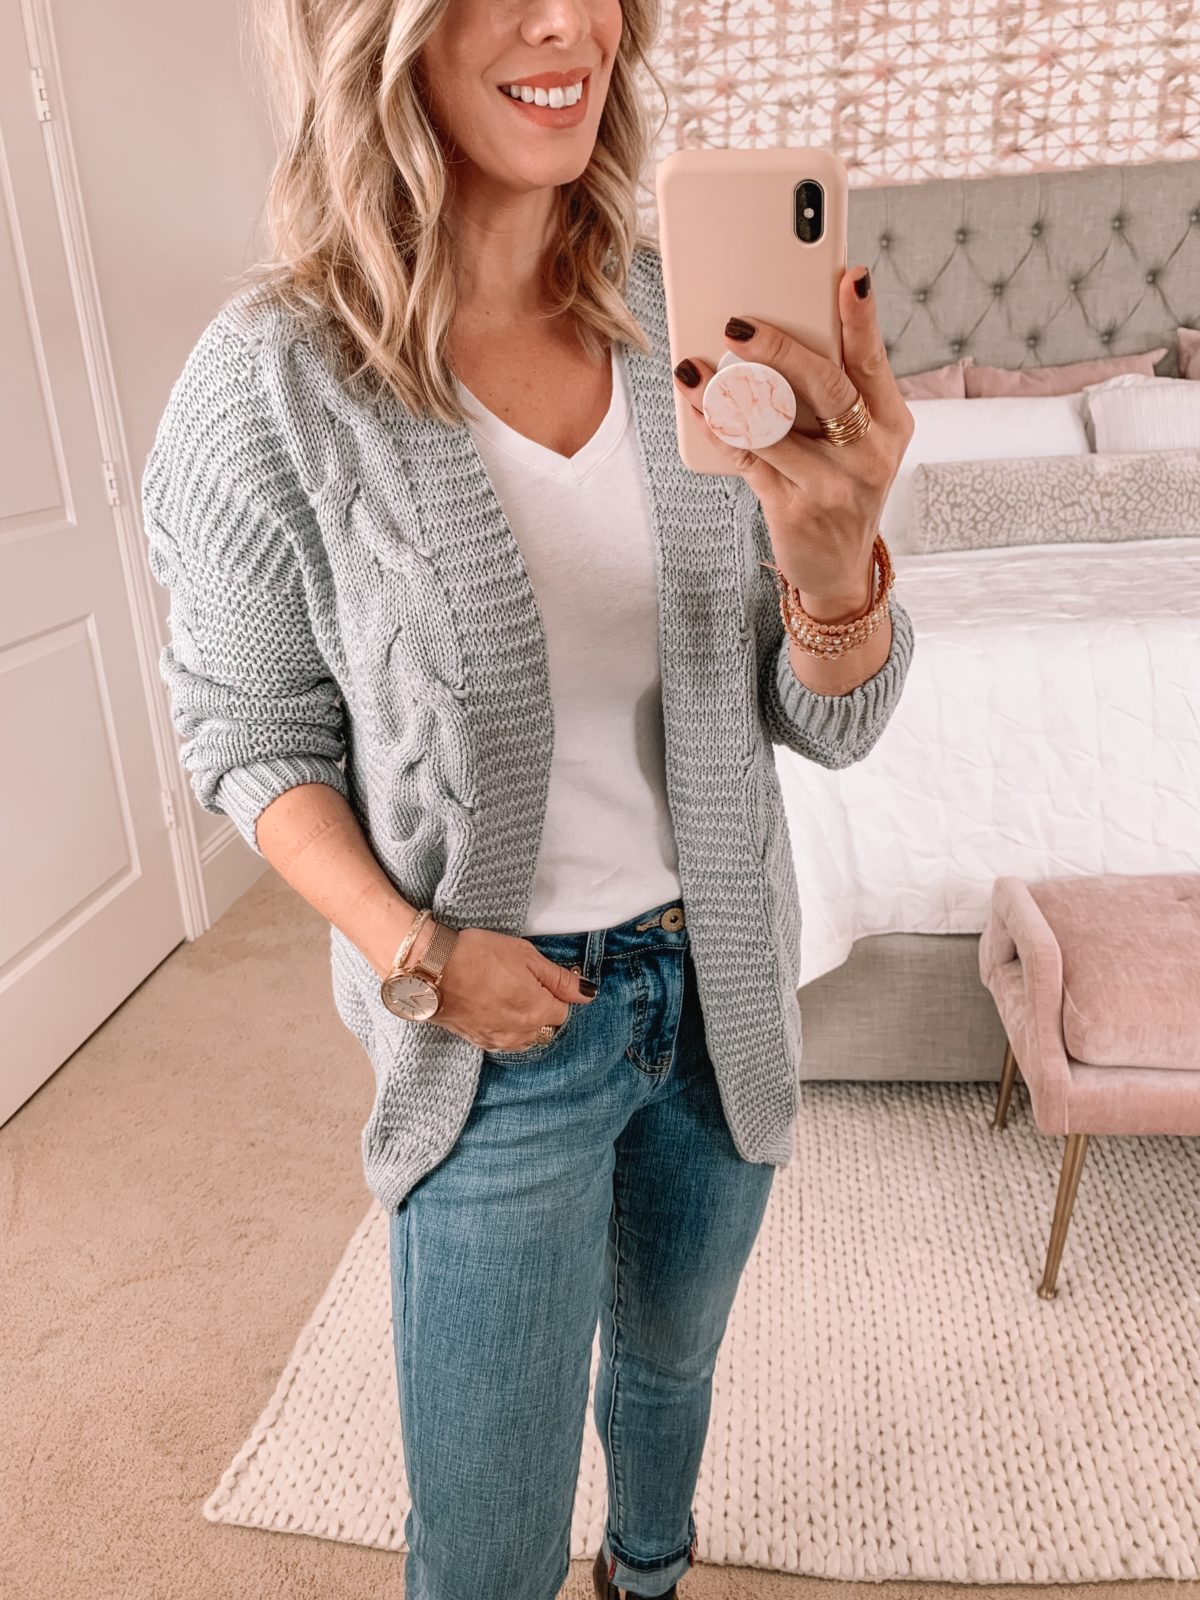 Amazon Fashion Faves, Tee, Cardigan, JAG Jeans, Booties